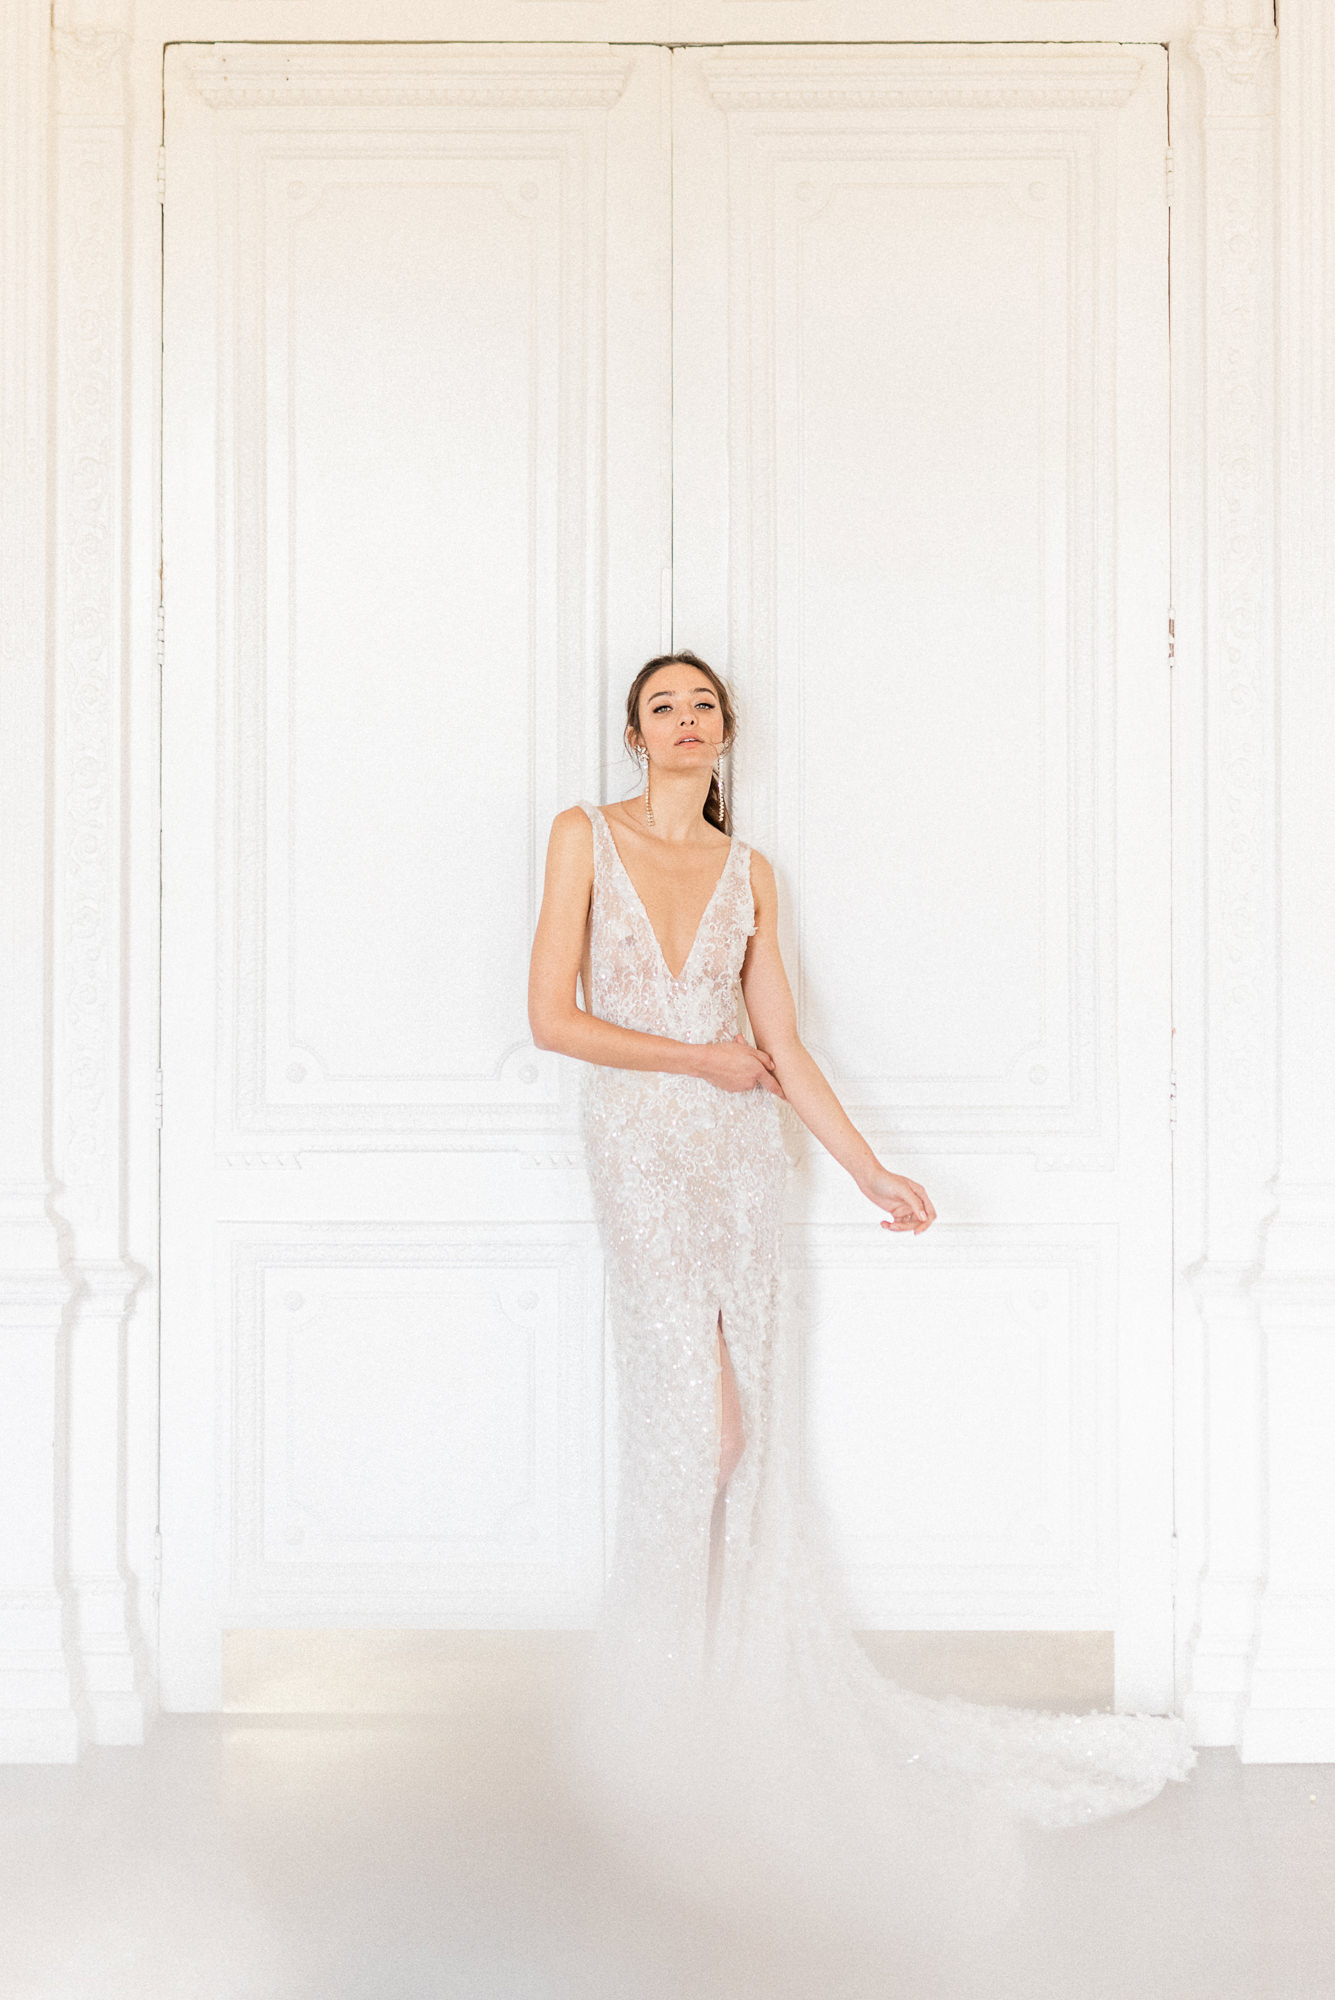 Bride wearing plunging neck lace sleeveless dress  - photo by Gianluca Adovasio Photography